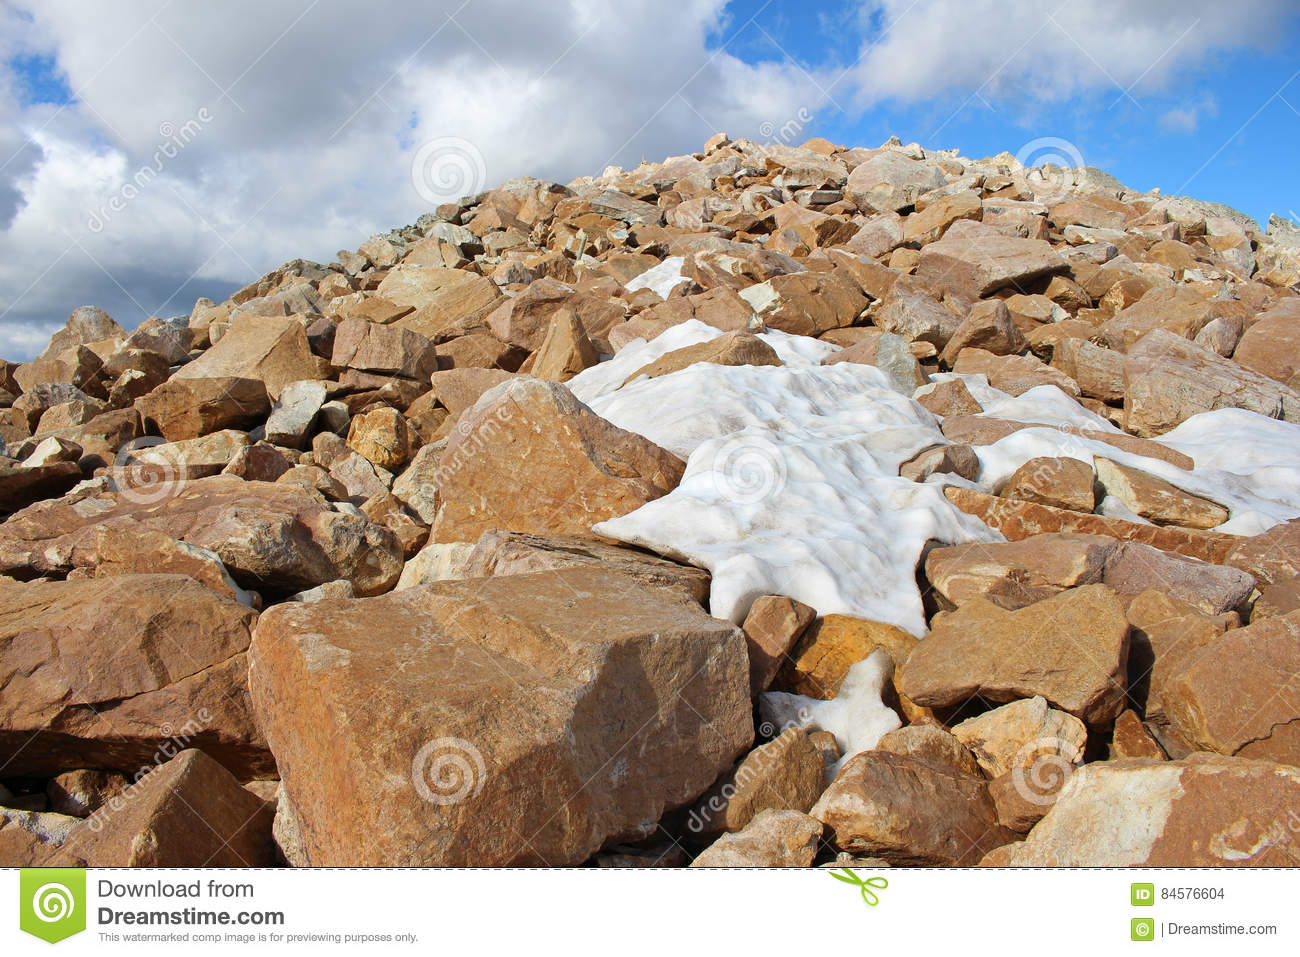 Boulder field near summit of mountain with patchy snow.